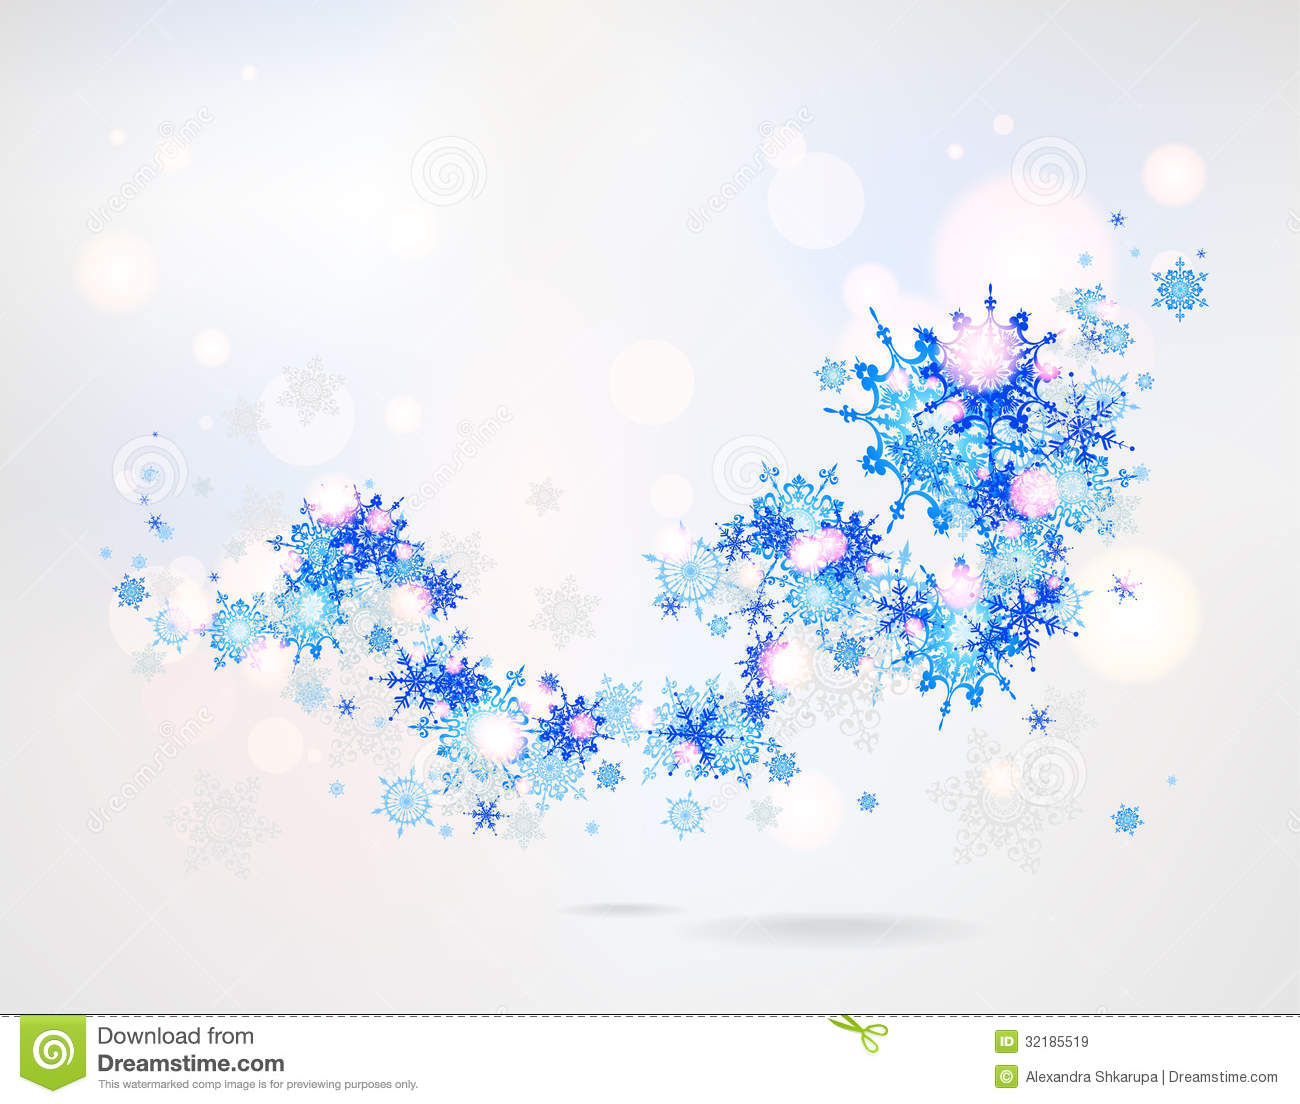 abstract winter background free - photo #23